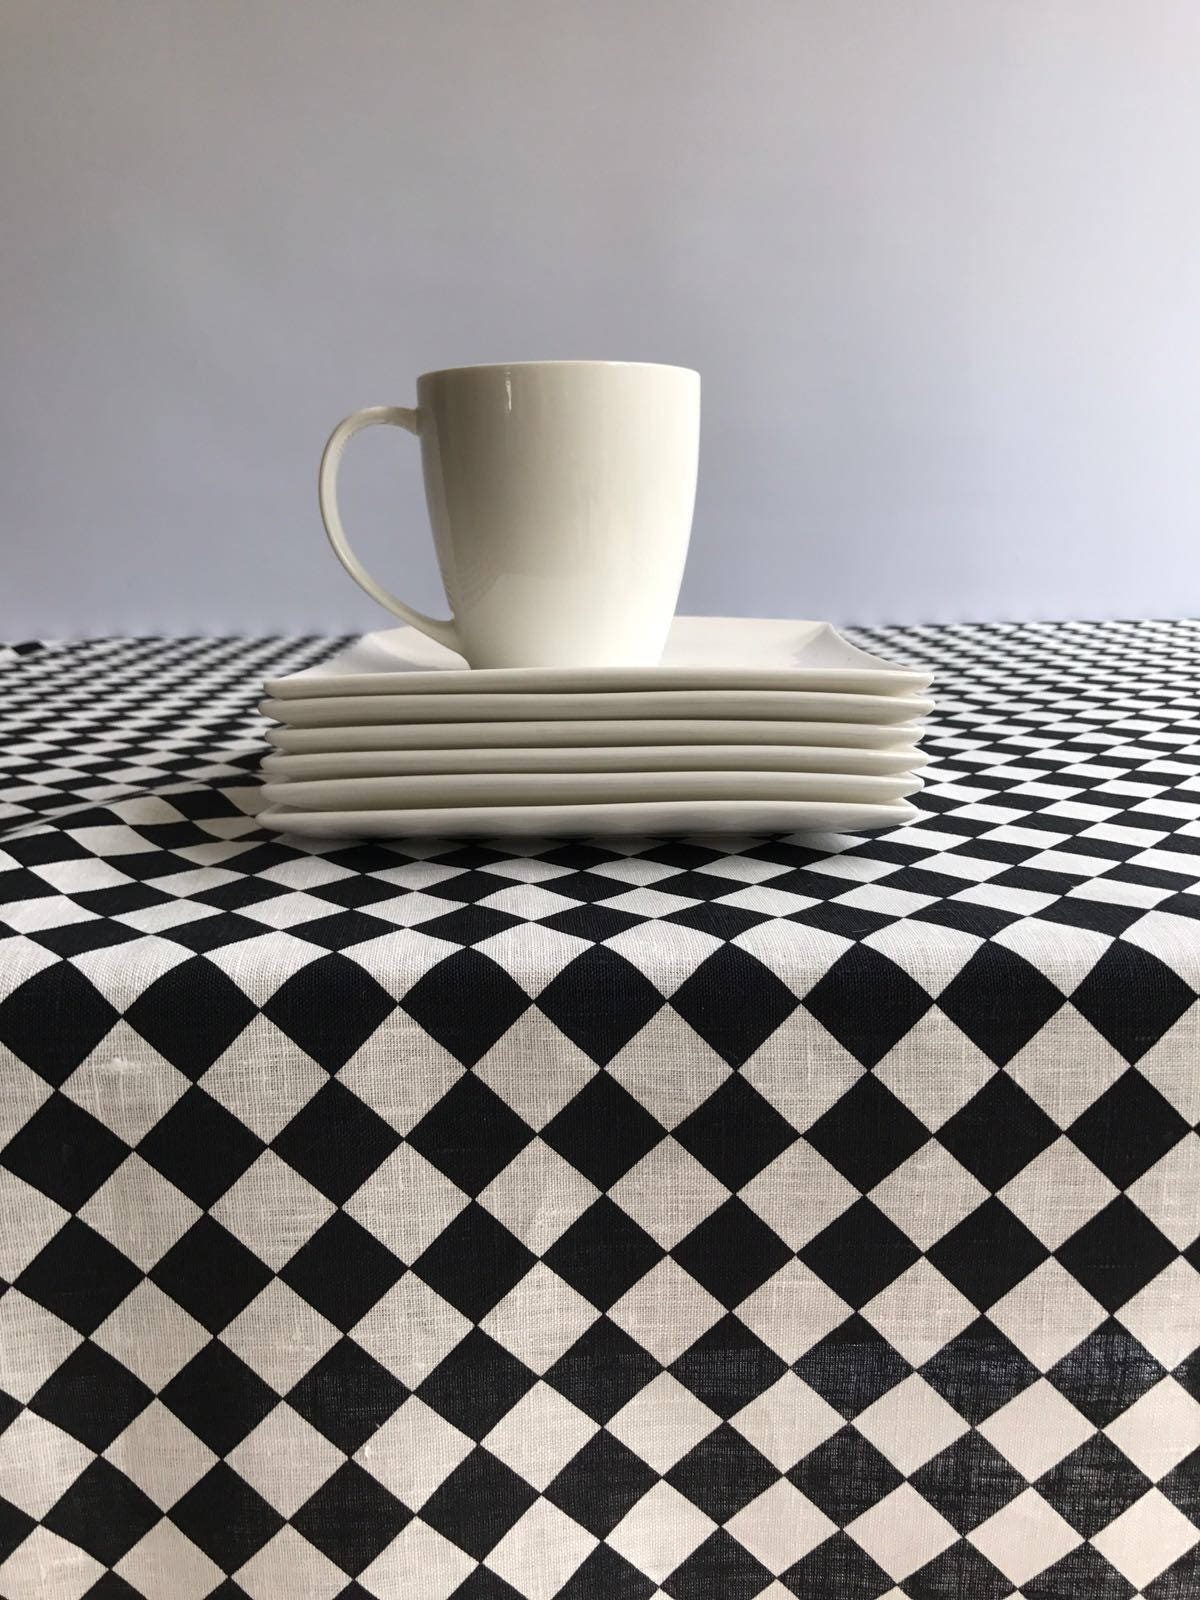 Black And White Checkered Tablecloth, Linen Tablecloth, Retro Linen Table  Cloth, Geometric Tablecloth Rectangle Tablecloth Square Checkers